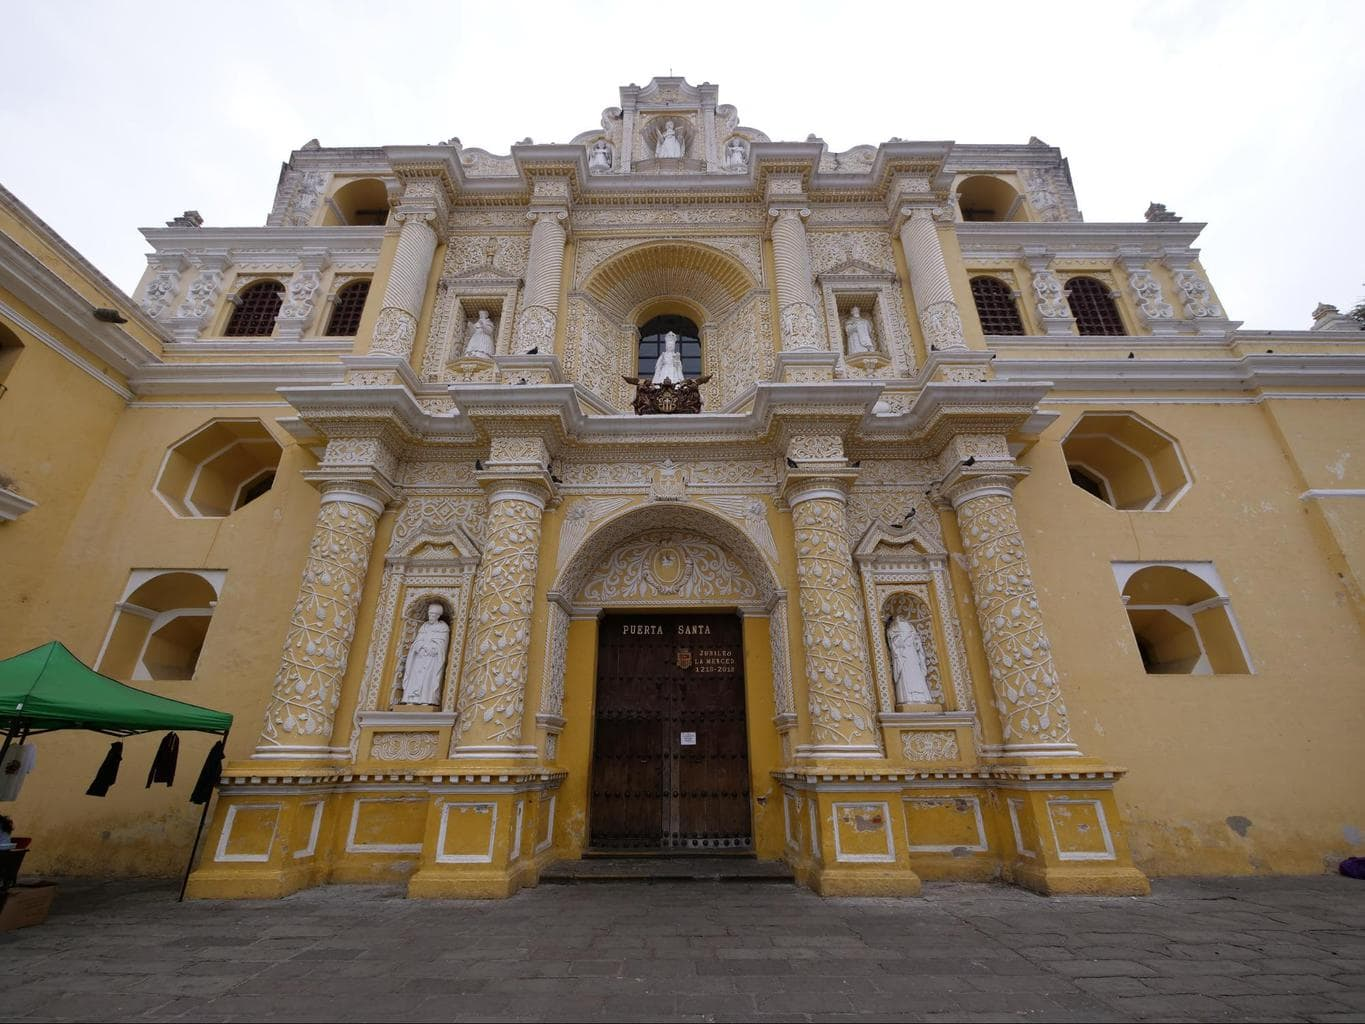 Entrance to Iglesia de la Merced